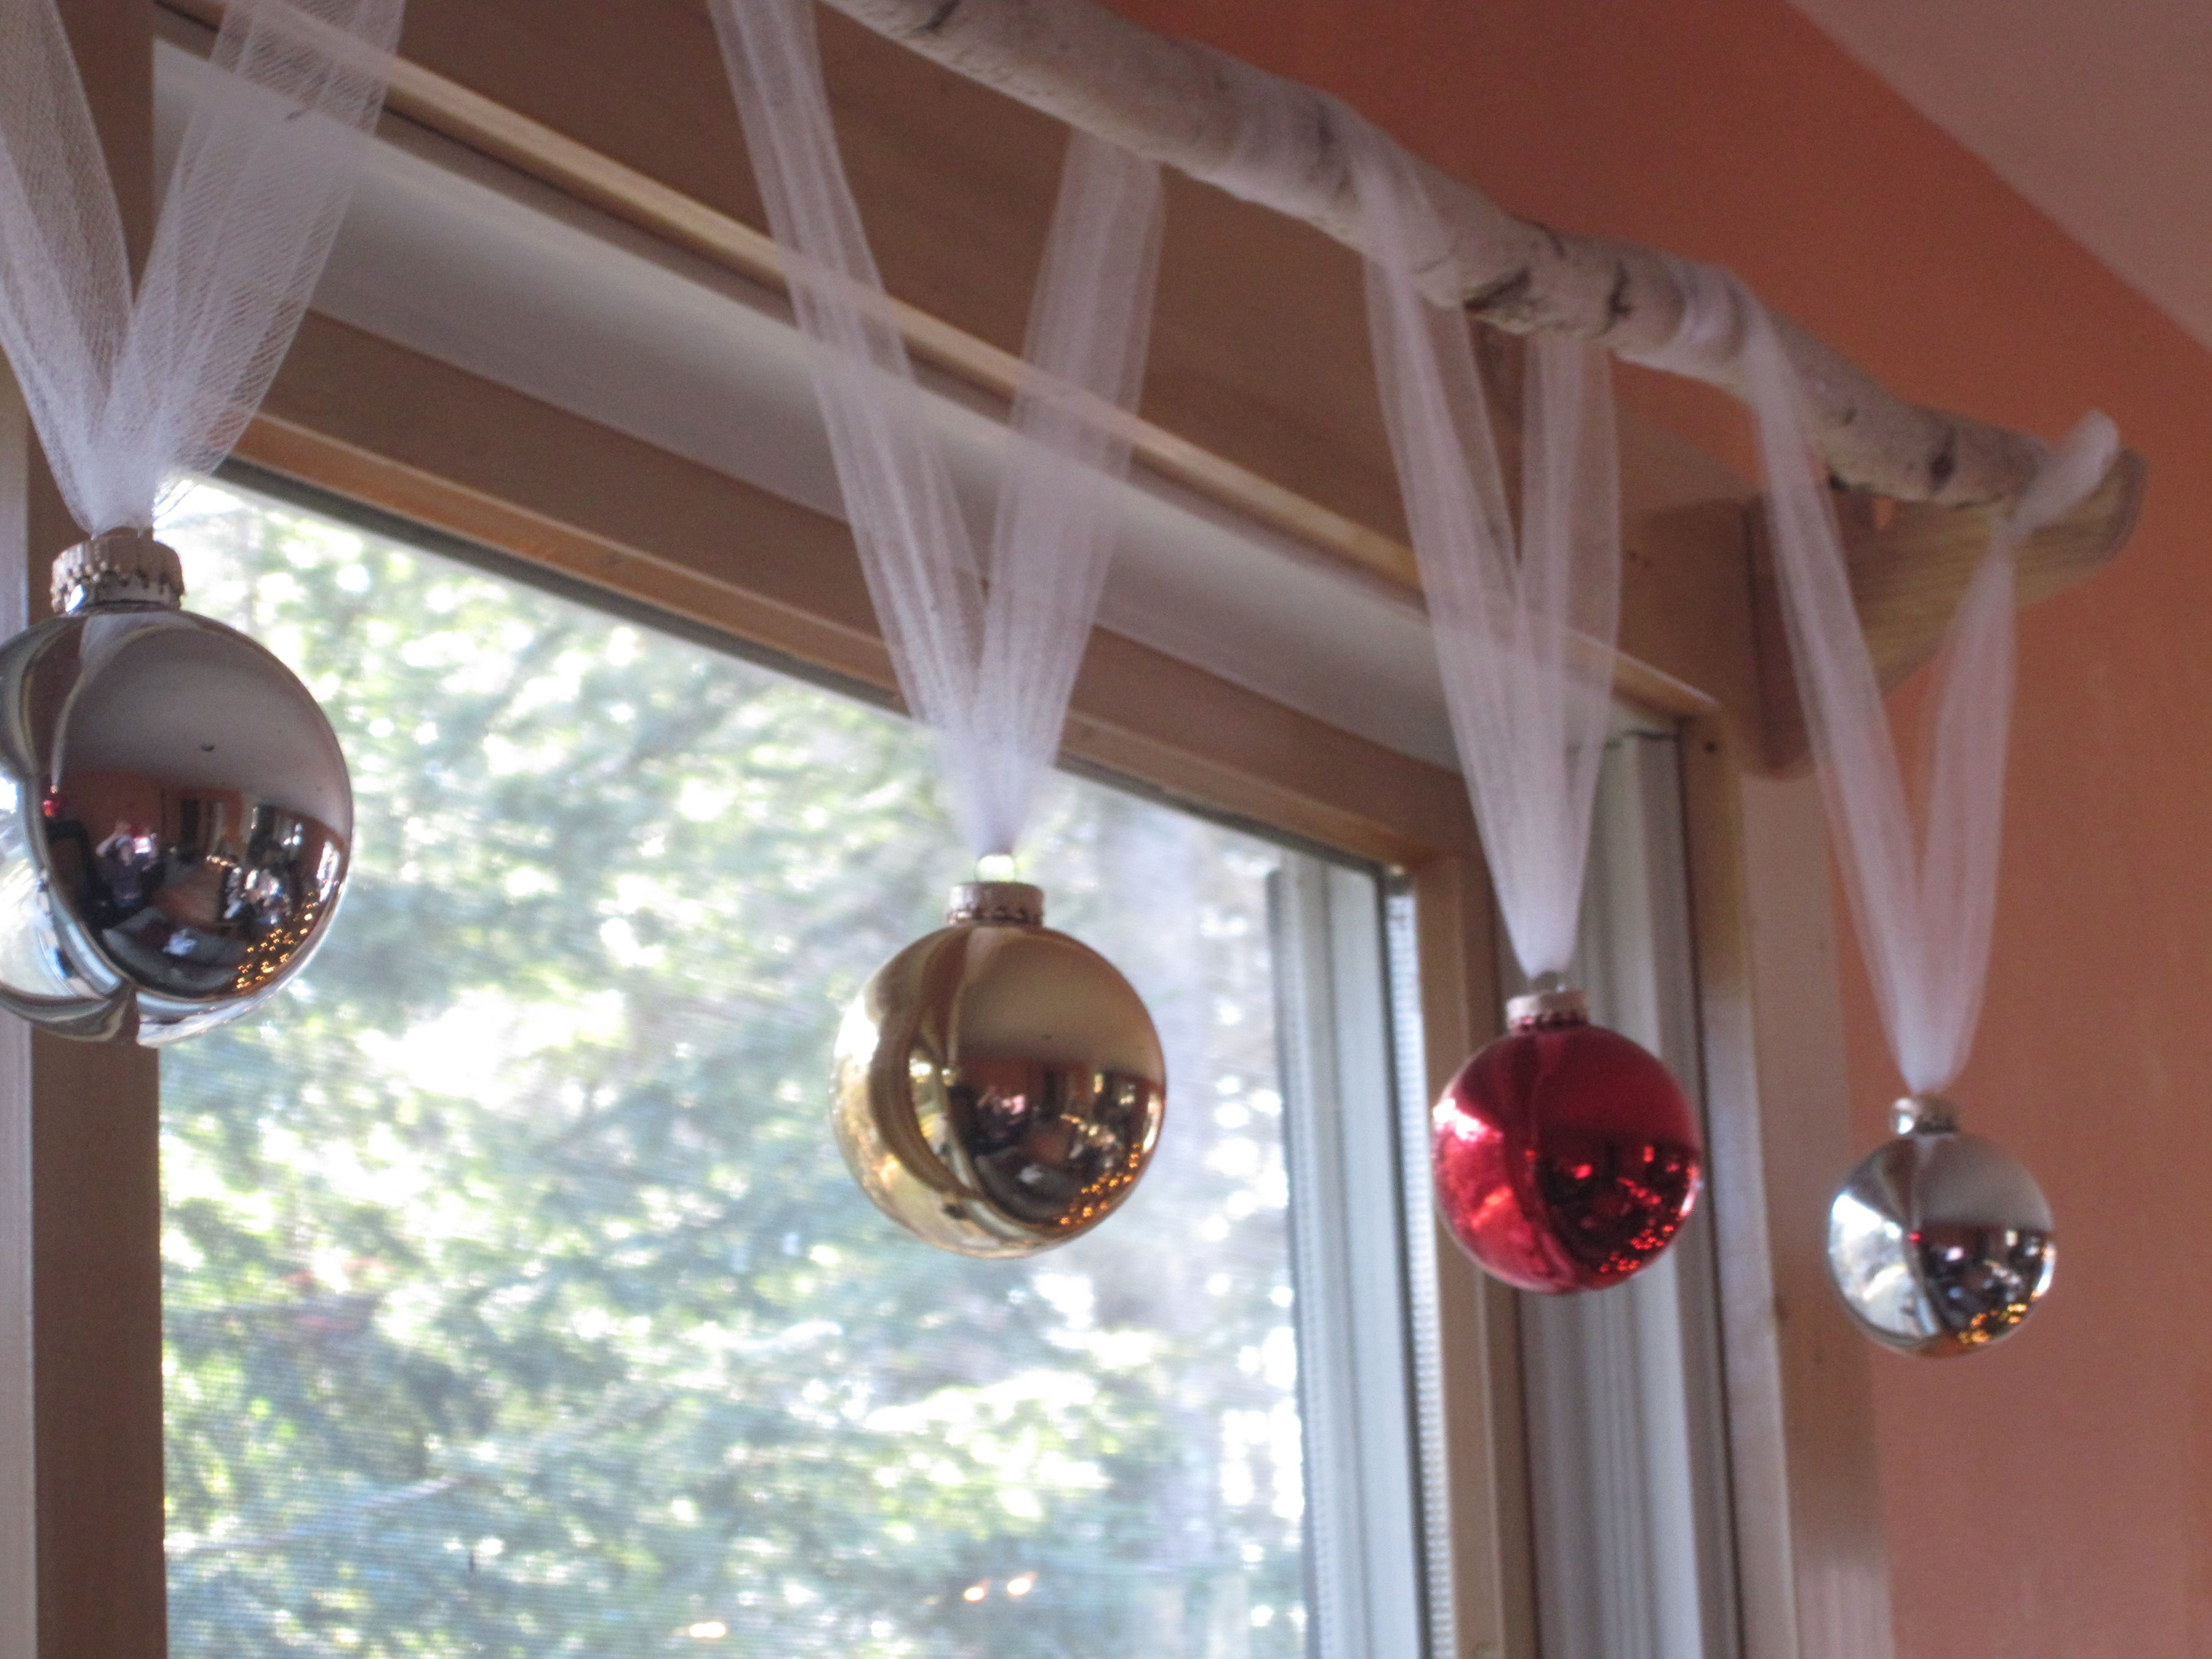 diy holiday window treatment tulle birch branch cheap christmas balls holiday how 2s. Black Bedroom Furniture Sets. Home Design Ideas